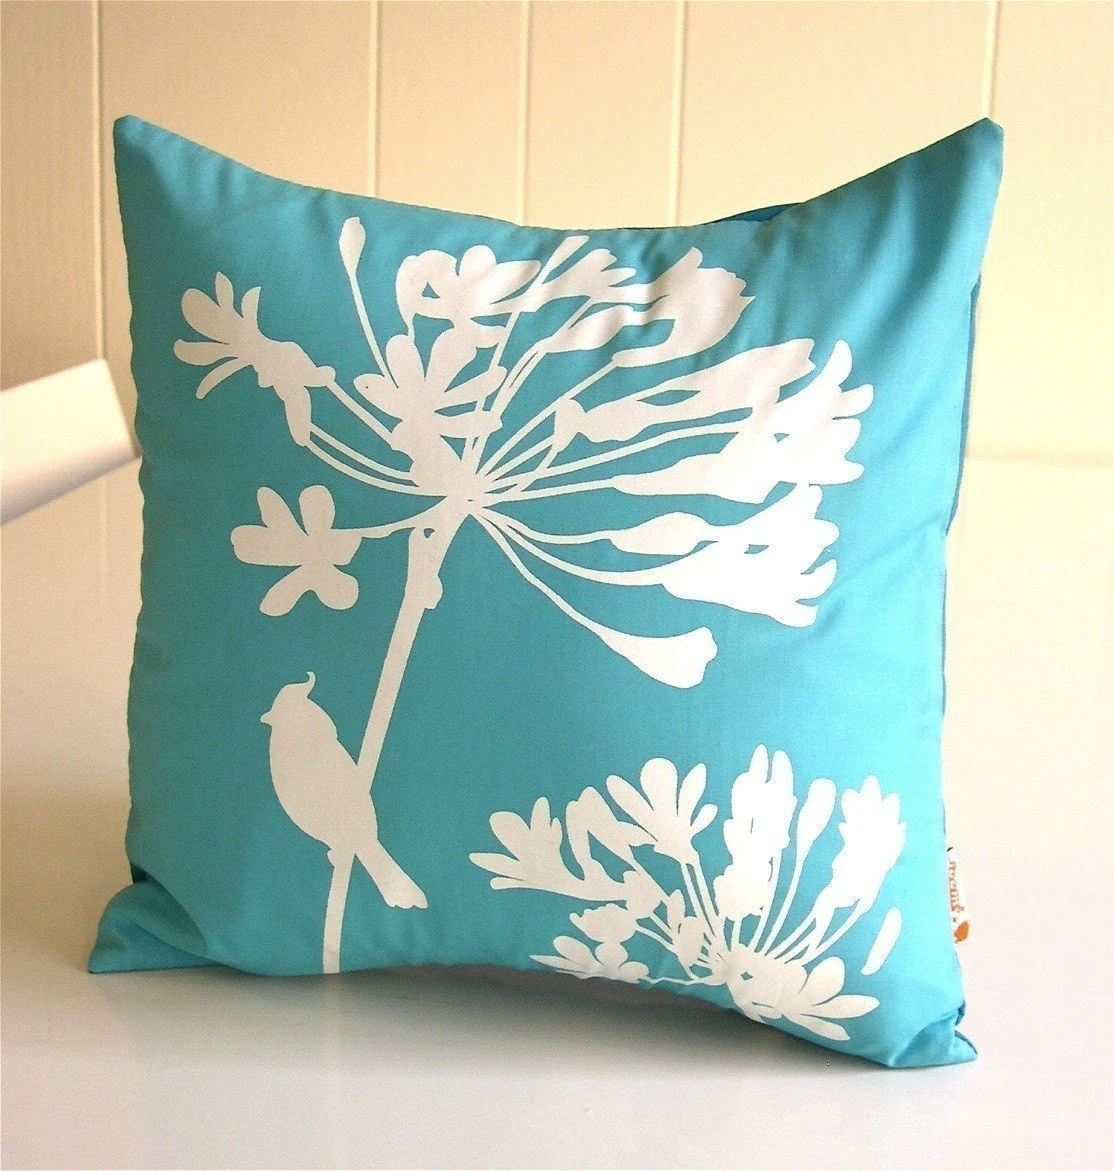 Aqua Blue Cardinal on Agapanthus pillow from joom.etsy.com